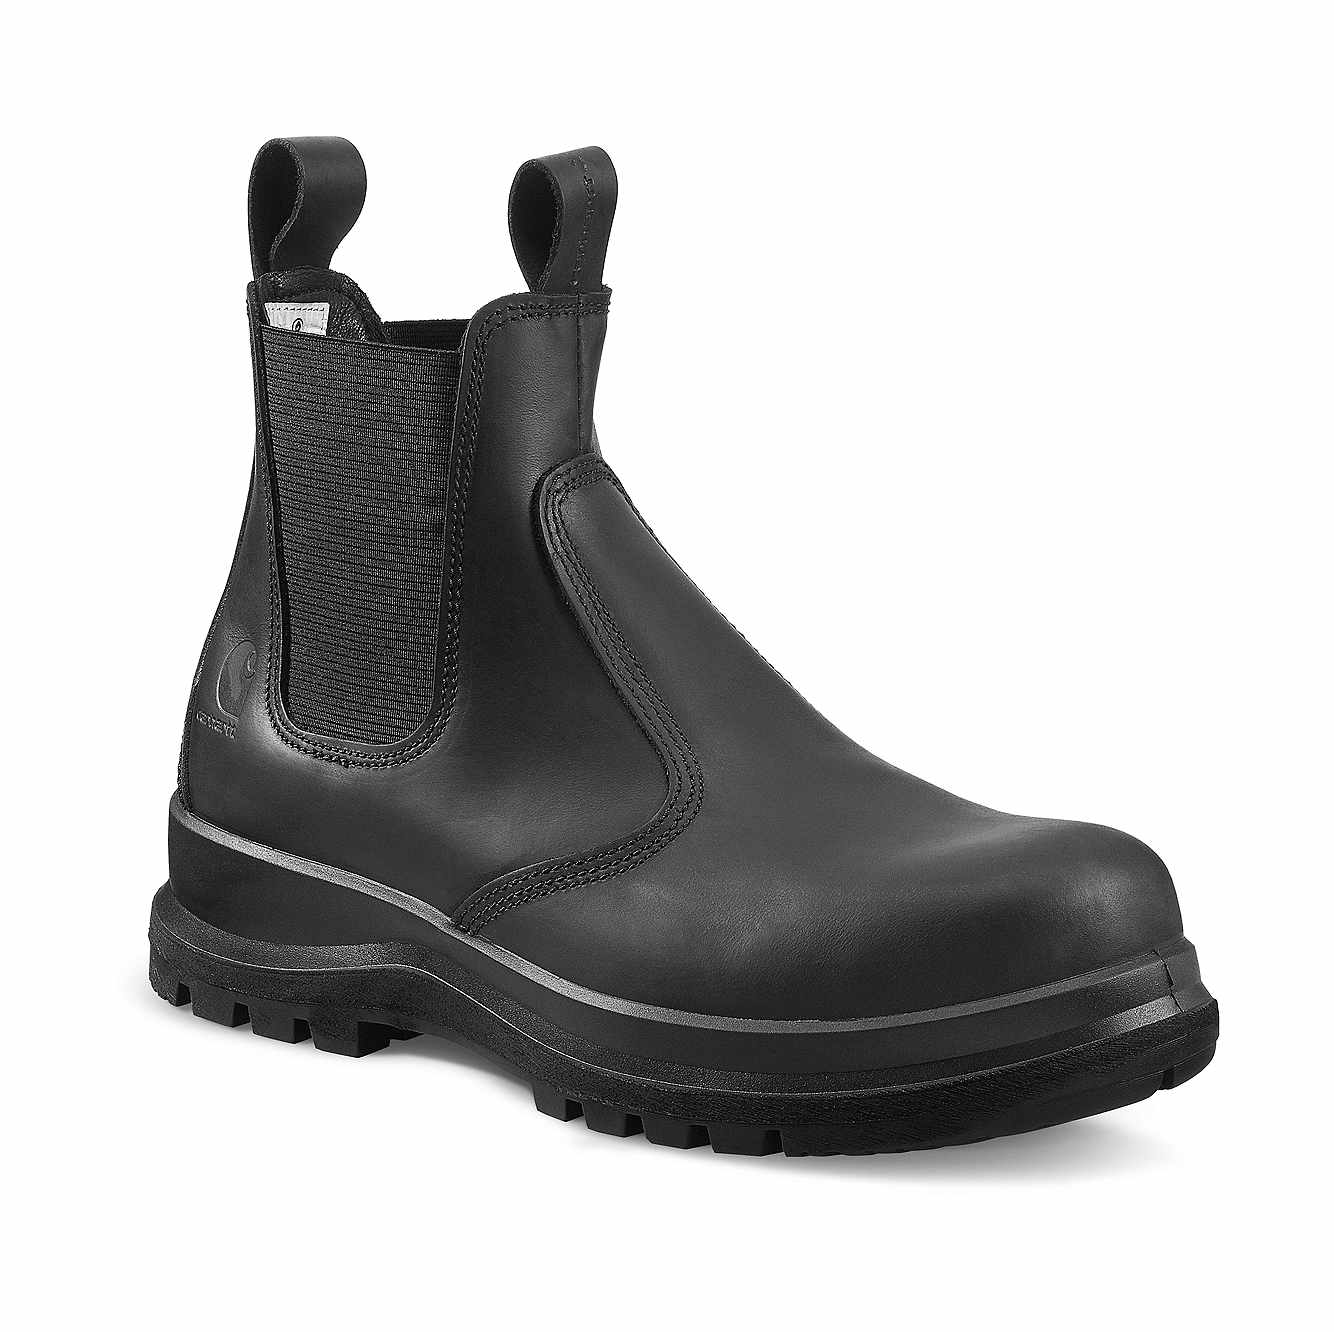 Picture of CARTER RUGGED FLEX® S3 CHELSEA SAFETY BOOT